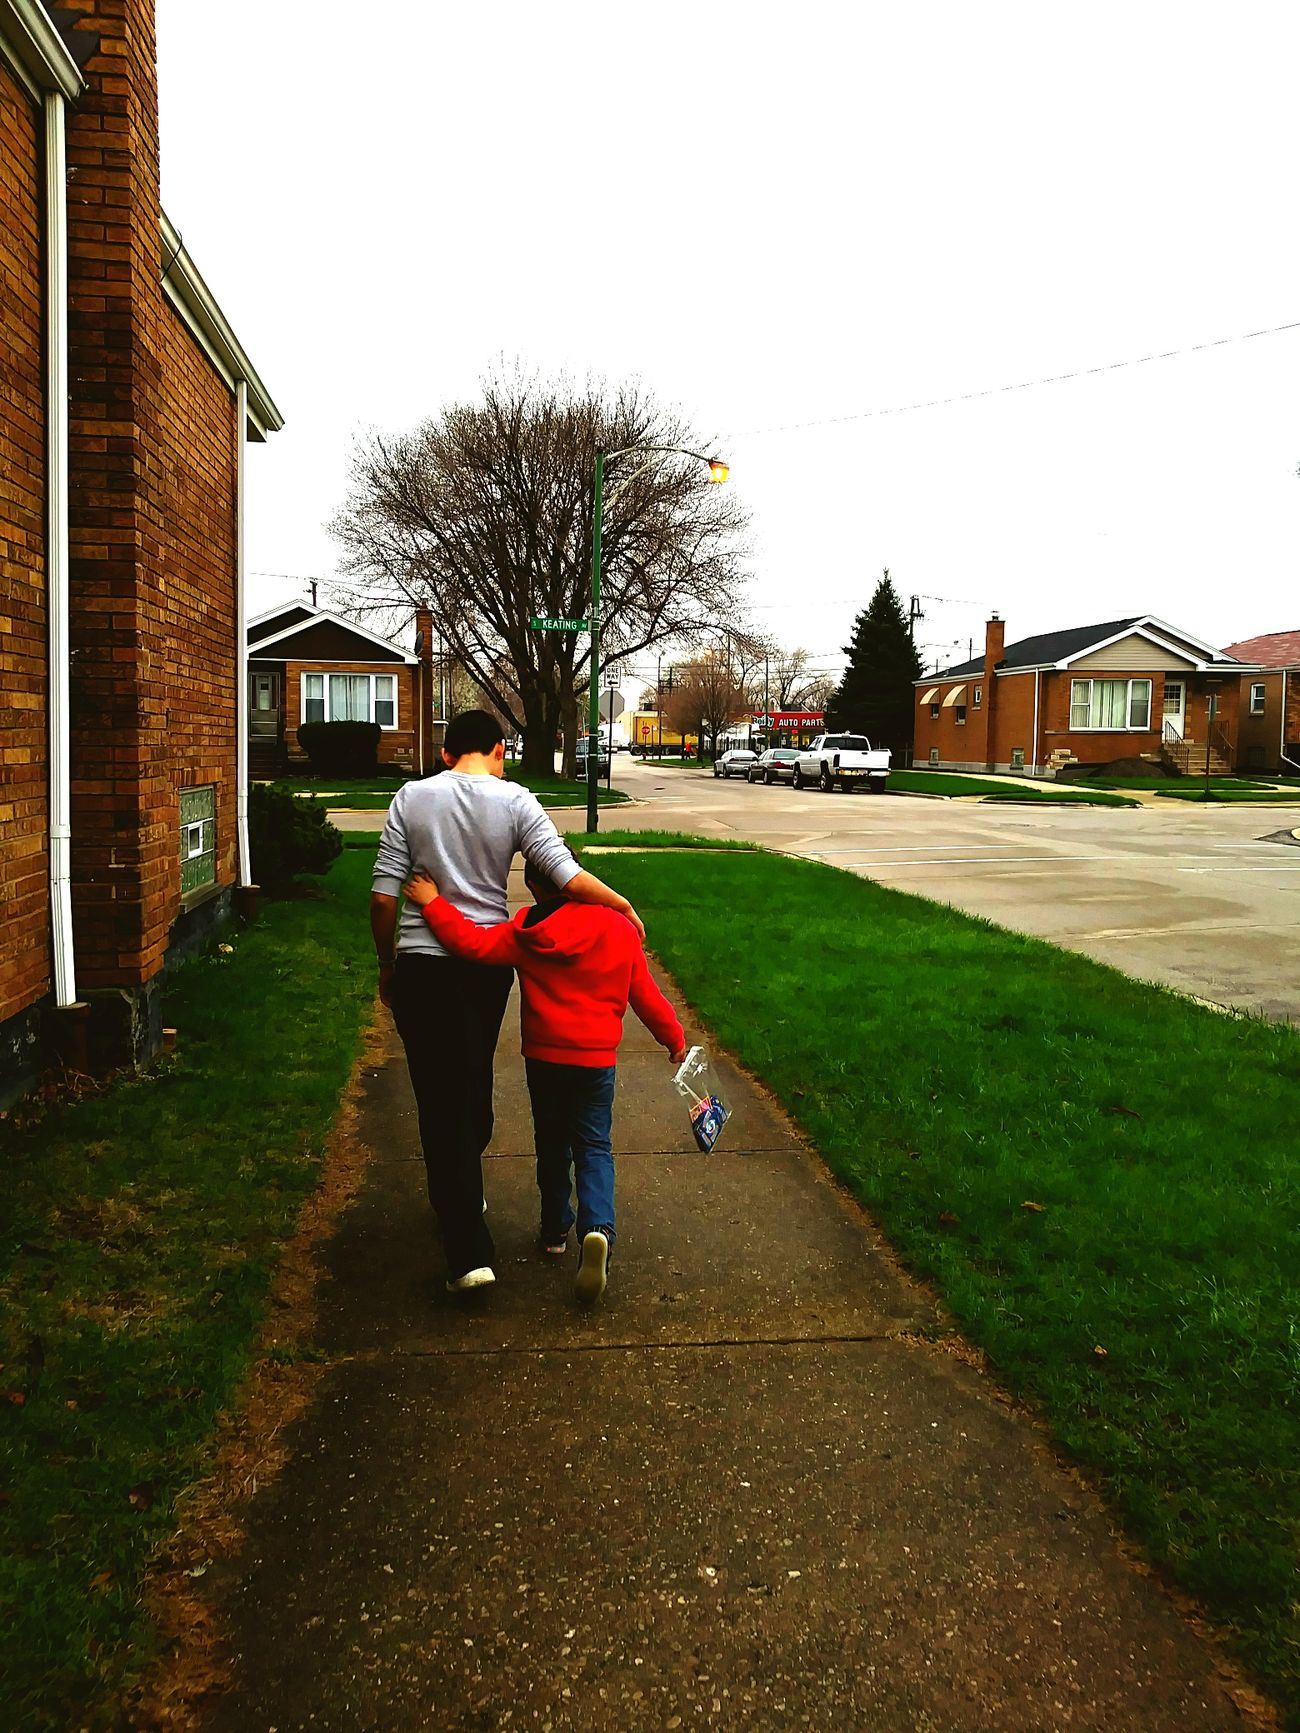 Bigbrotherlittlebrother Family First Red Sweater Chicago Realpeople Afterschool  Littlebrothersarentsobad Togetherness Outdoors Walking Two People House Walkwithme Focus On Foreground